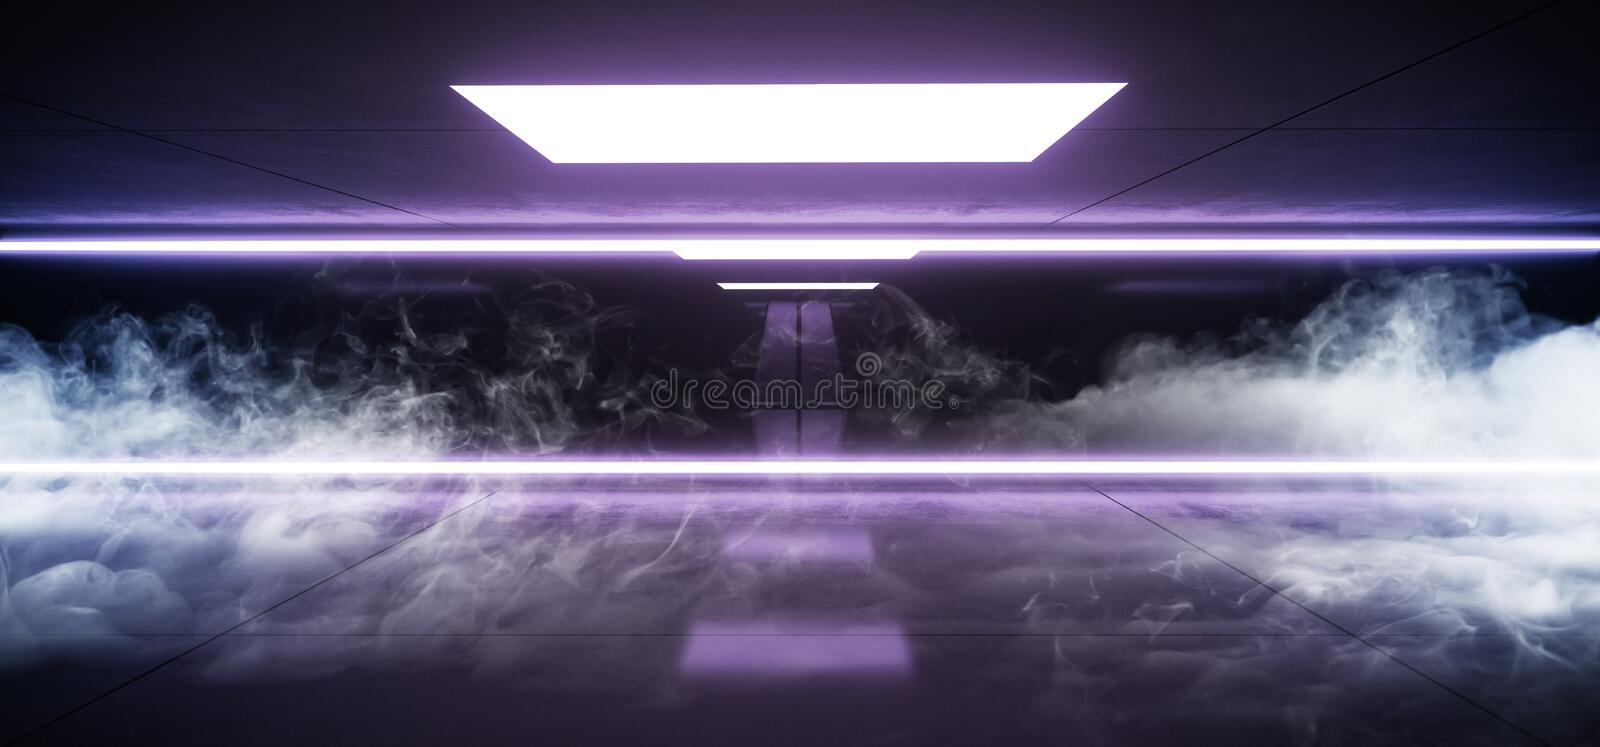 Smoke Fog Horizontal Lines Neon Studio Construction Triangle Vibrant Sci Fi Tiled Stage Dance Lights Glowing Blue Purple. Reflecting On Grunge Concrete Big royalty free illustration